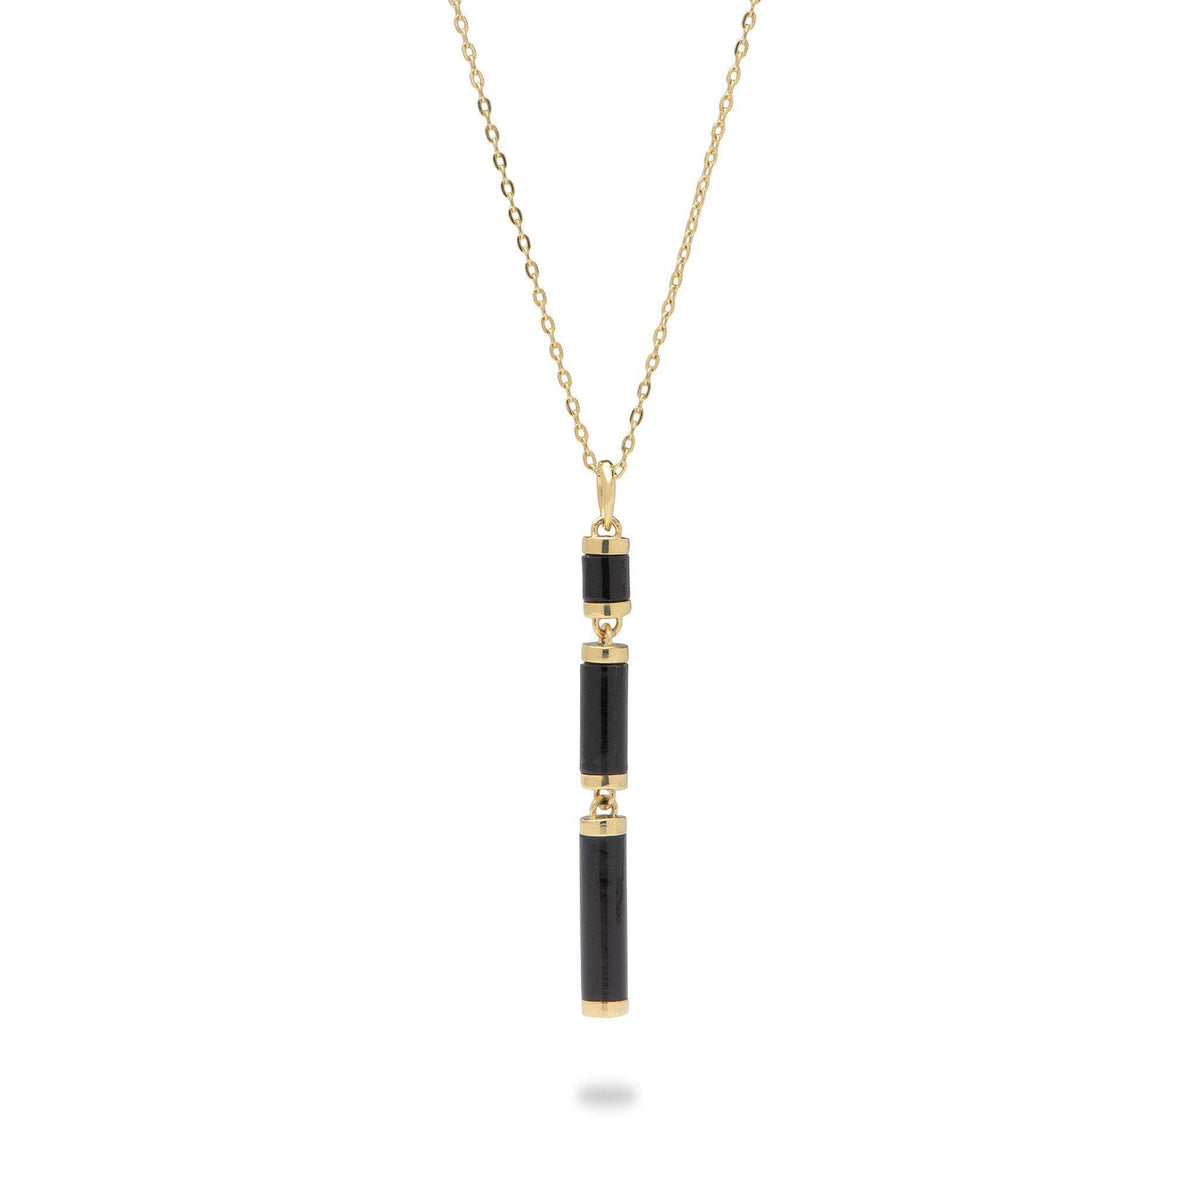 Ocean Chimes Station Necklace in 14K Yellow Gold